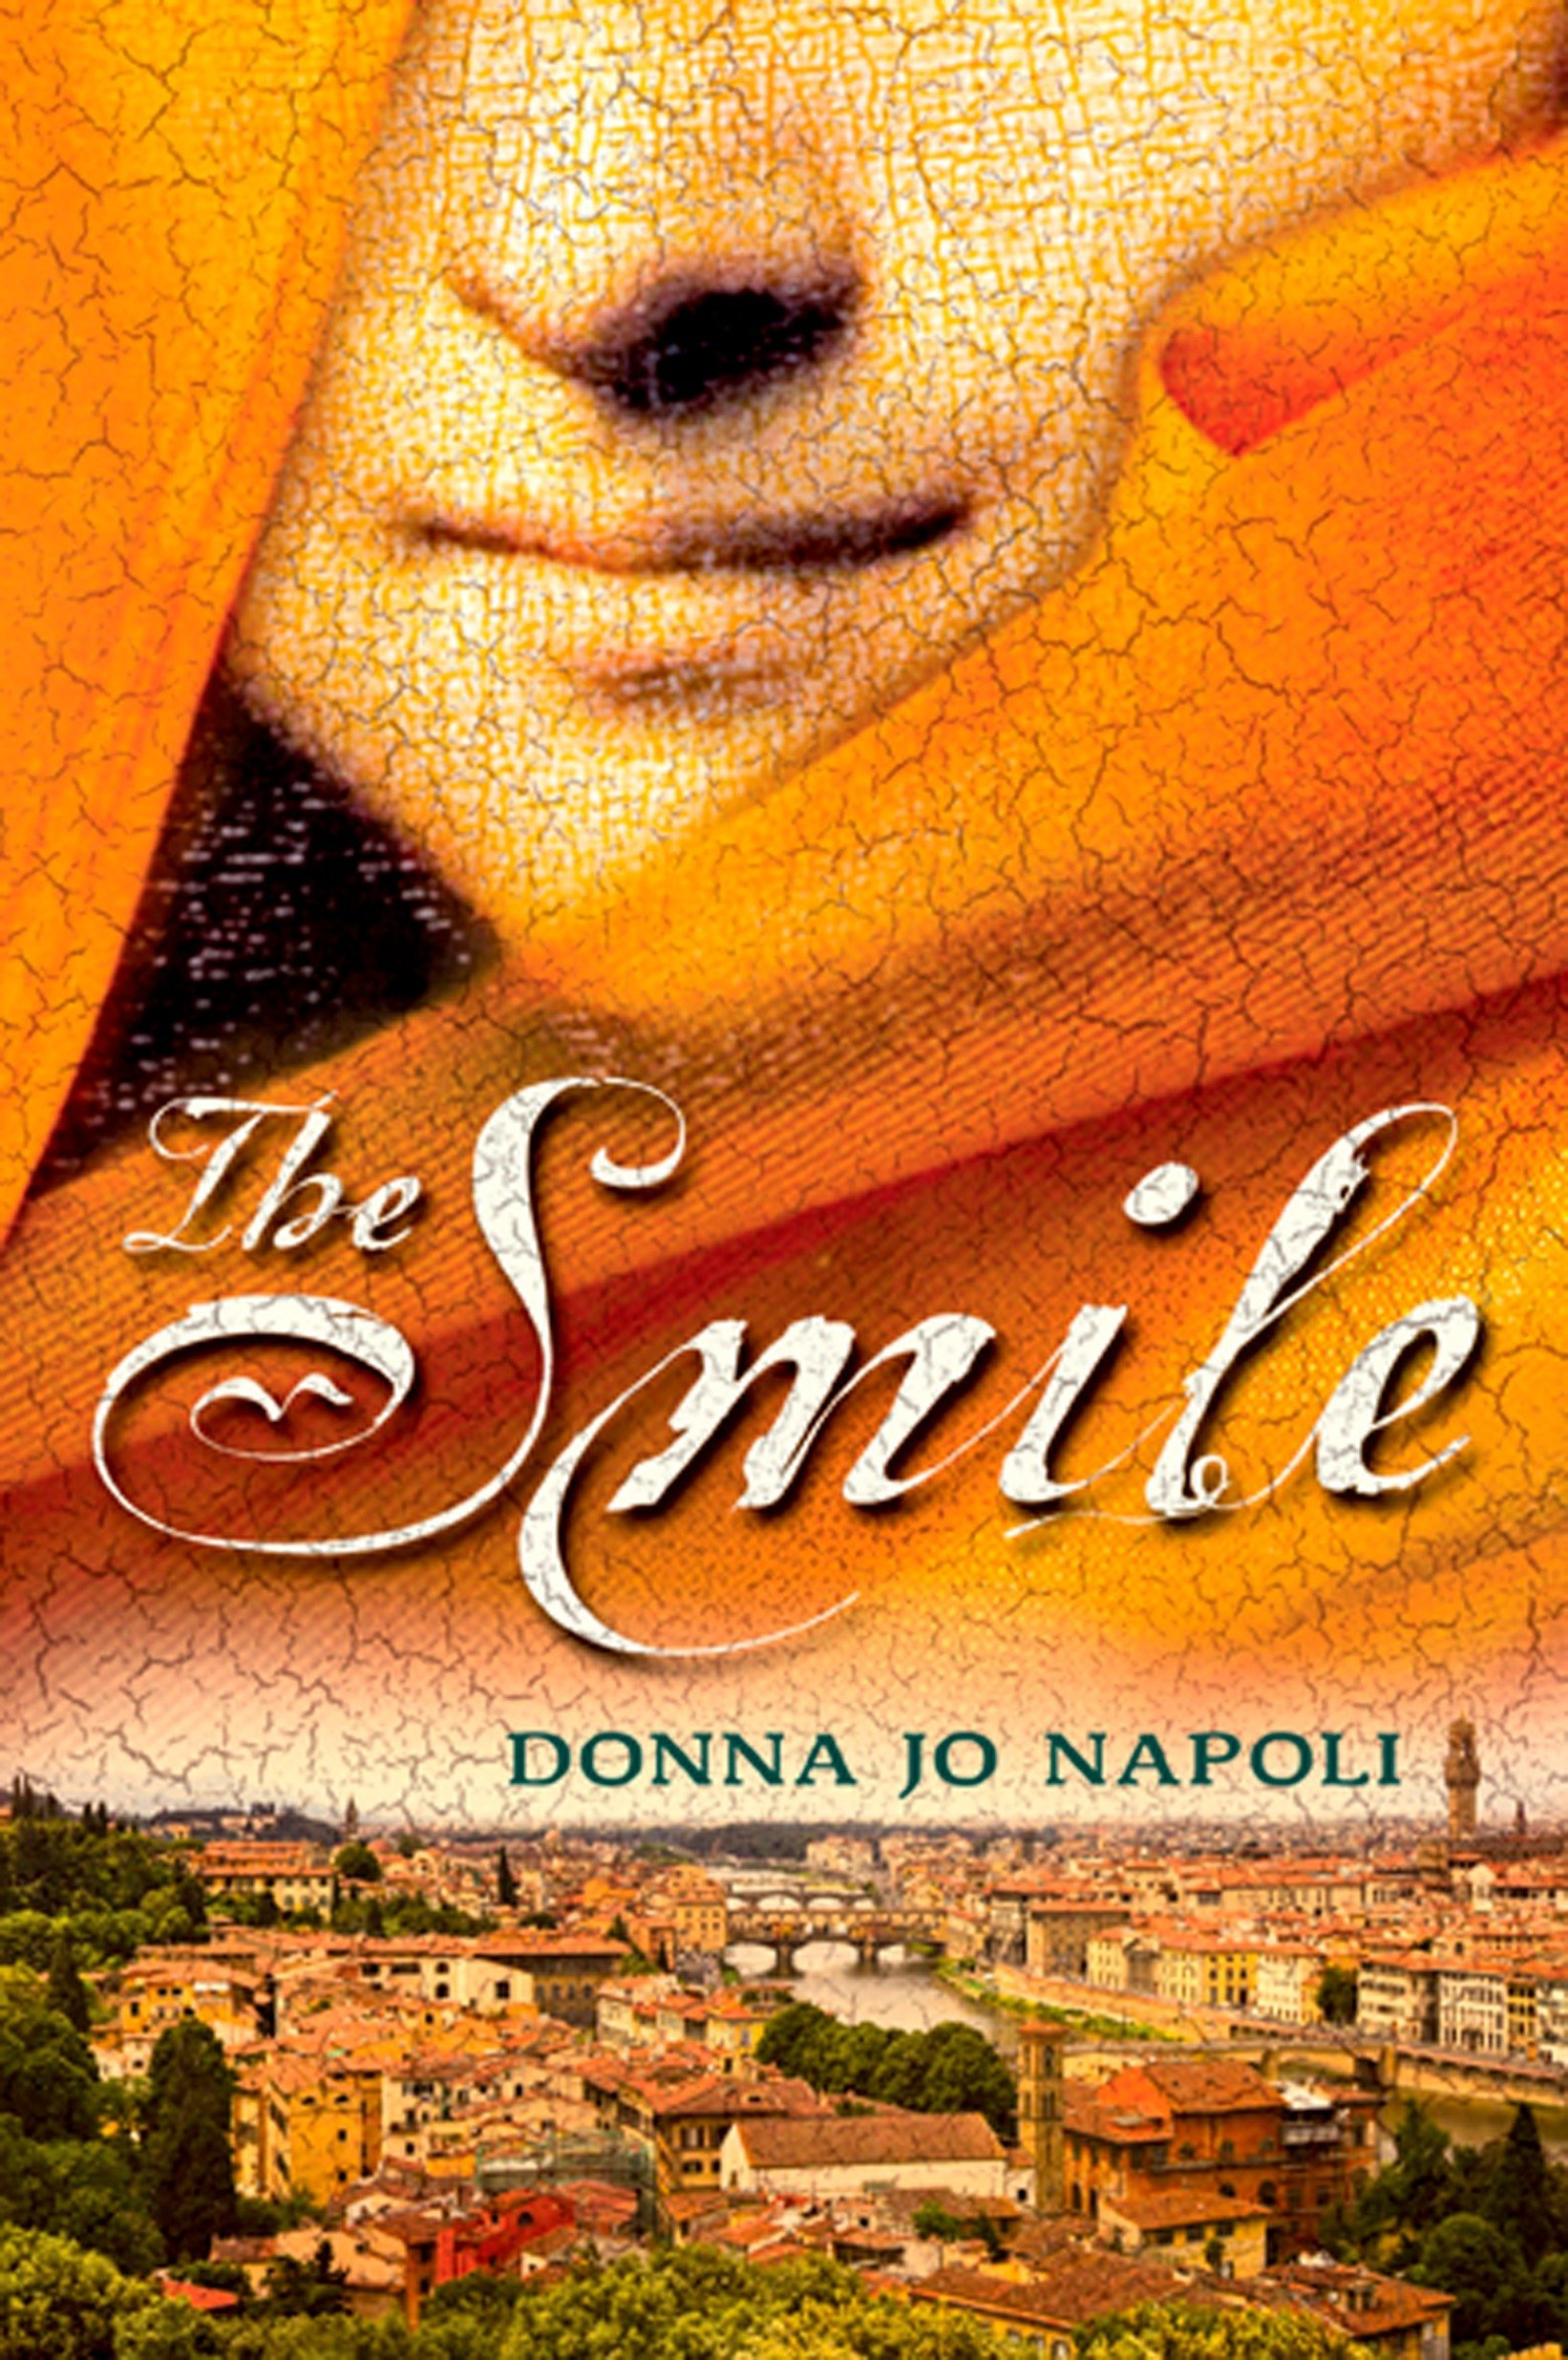 """The Smile by Donna Jo Napoli - This one is also meant for kids (ages 6-10) and is, once again, told from the POV of """"Monna Elisabetta,"""" with a definite romance plot. It's a great introduction to Italian culture and the Renaissance era."""